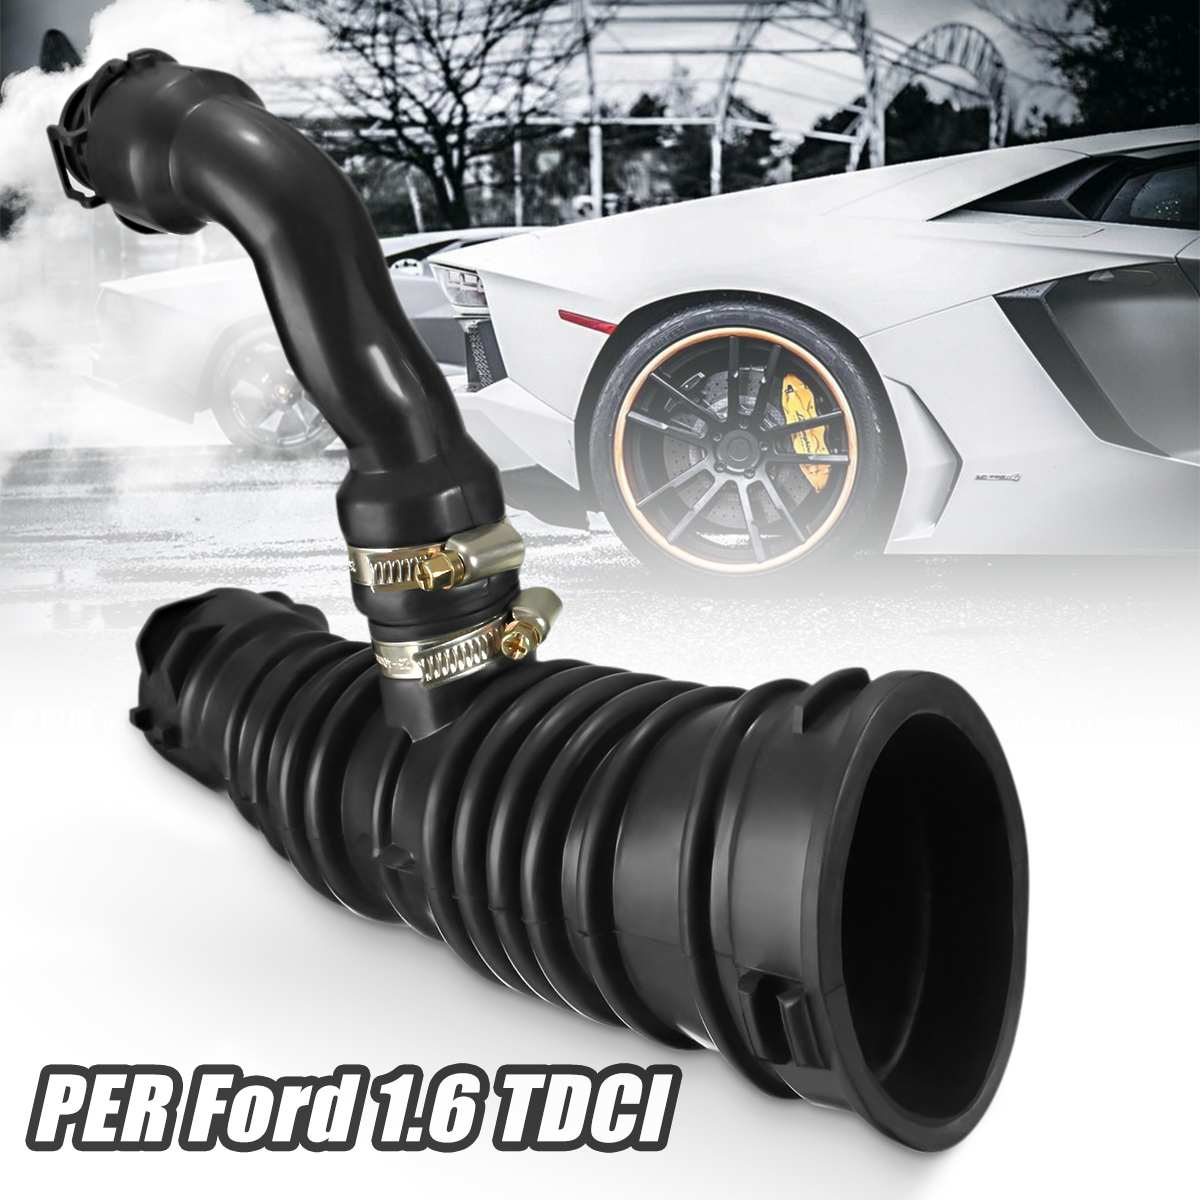 New For FORD For FOCUS For C-MAX 1.6 TDCI AIR FILTER INTAKE HOSE FLOW PIPE 1336611 3M519A673MG